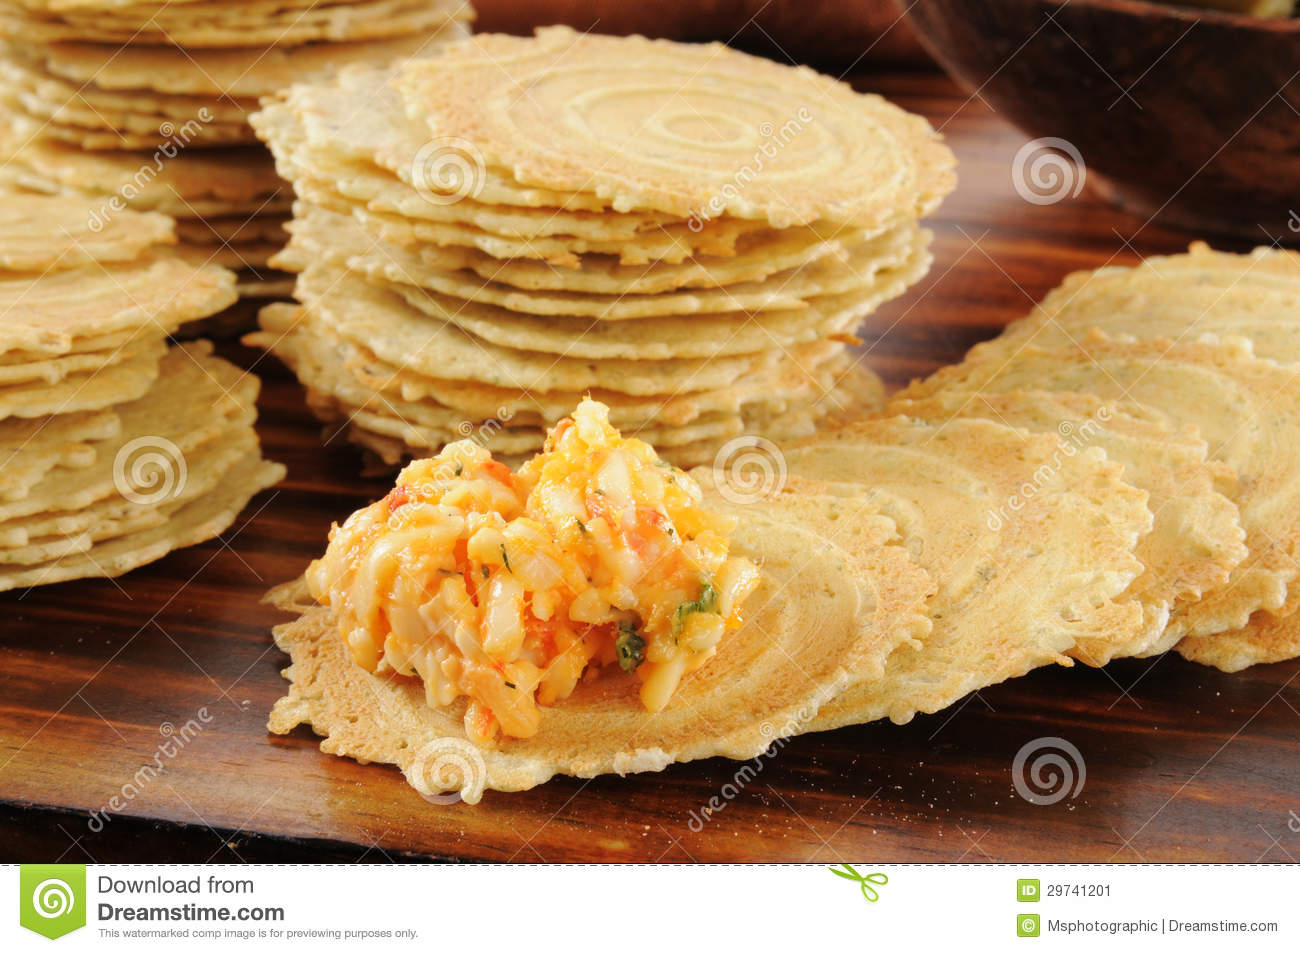 Gouda And Pimento Cheese Spread On Crackers Stock Image - Image ...